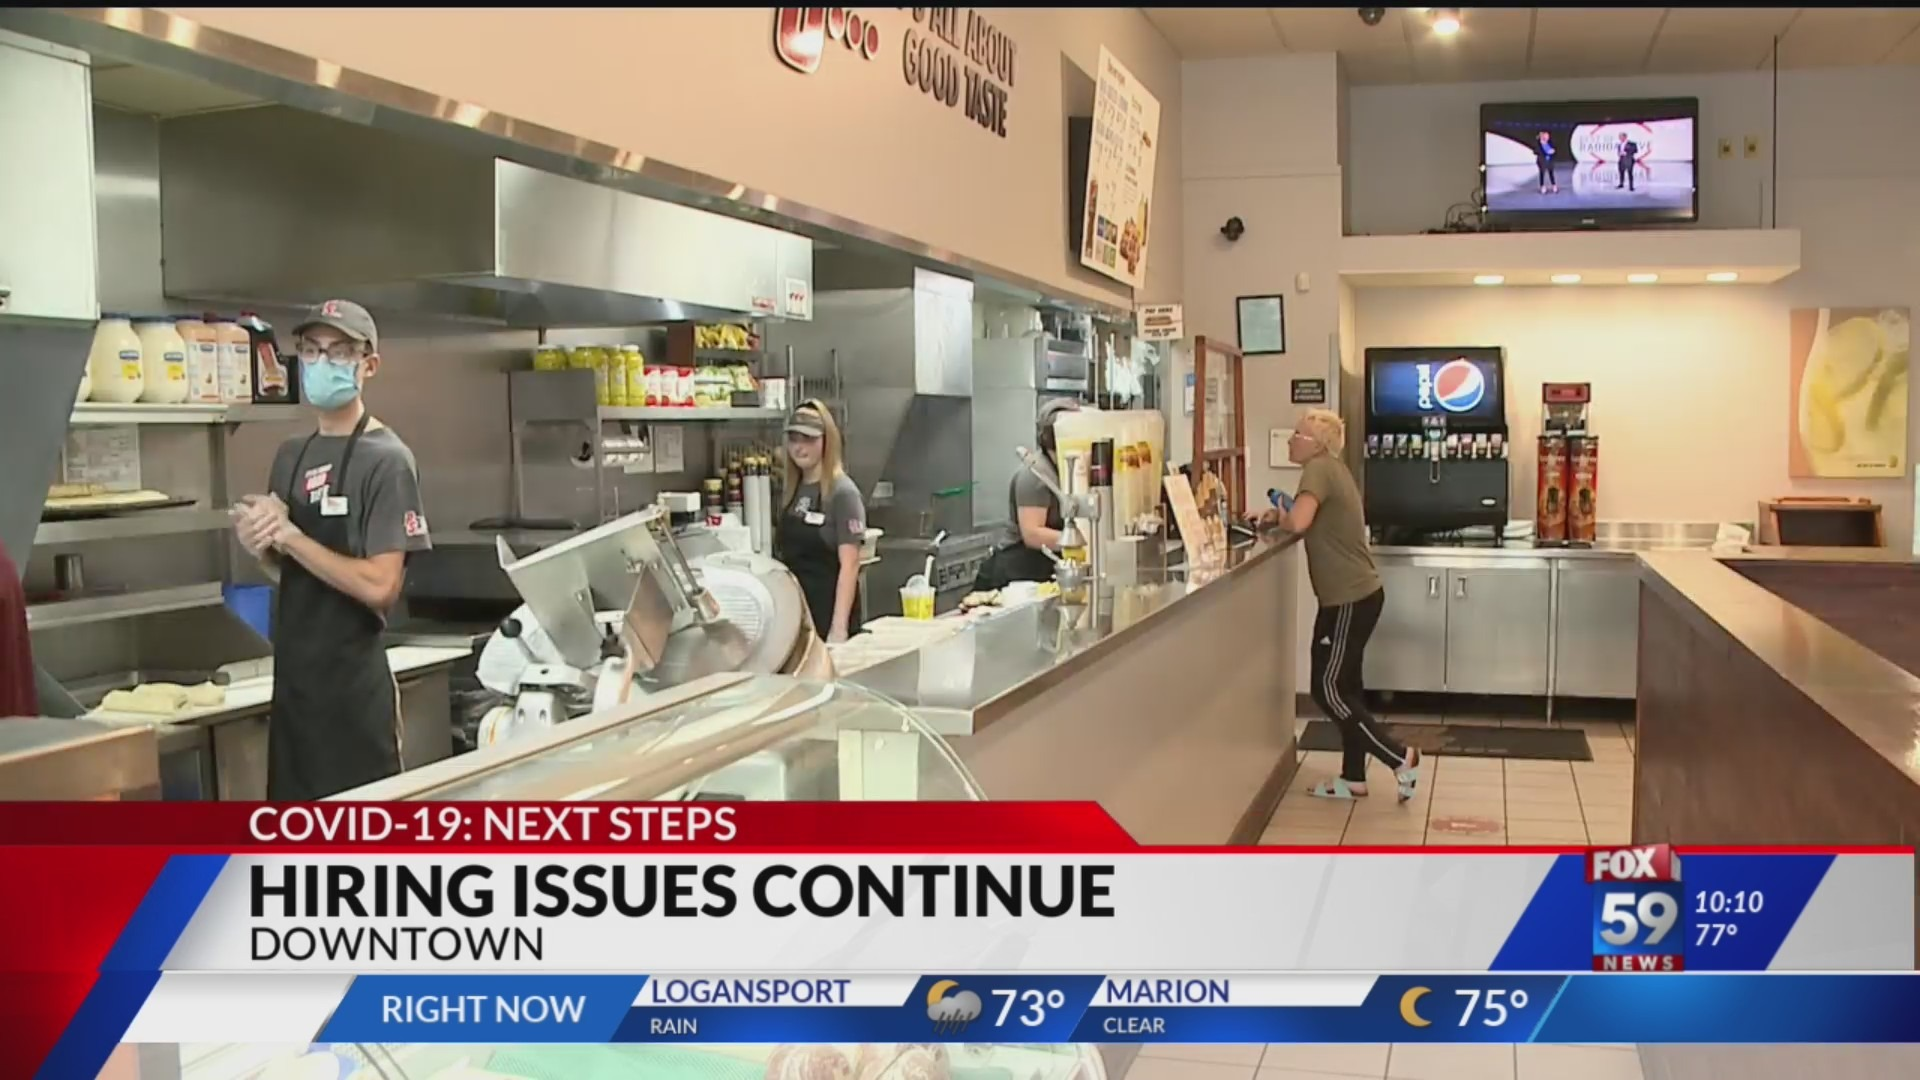 fox59.com - Mike Sullivan - Hiring issues continue to plague Indiana's hospitality industry